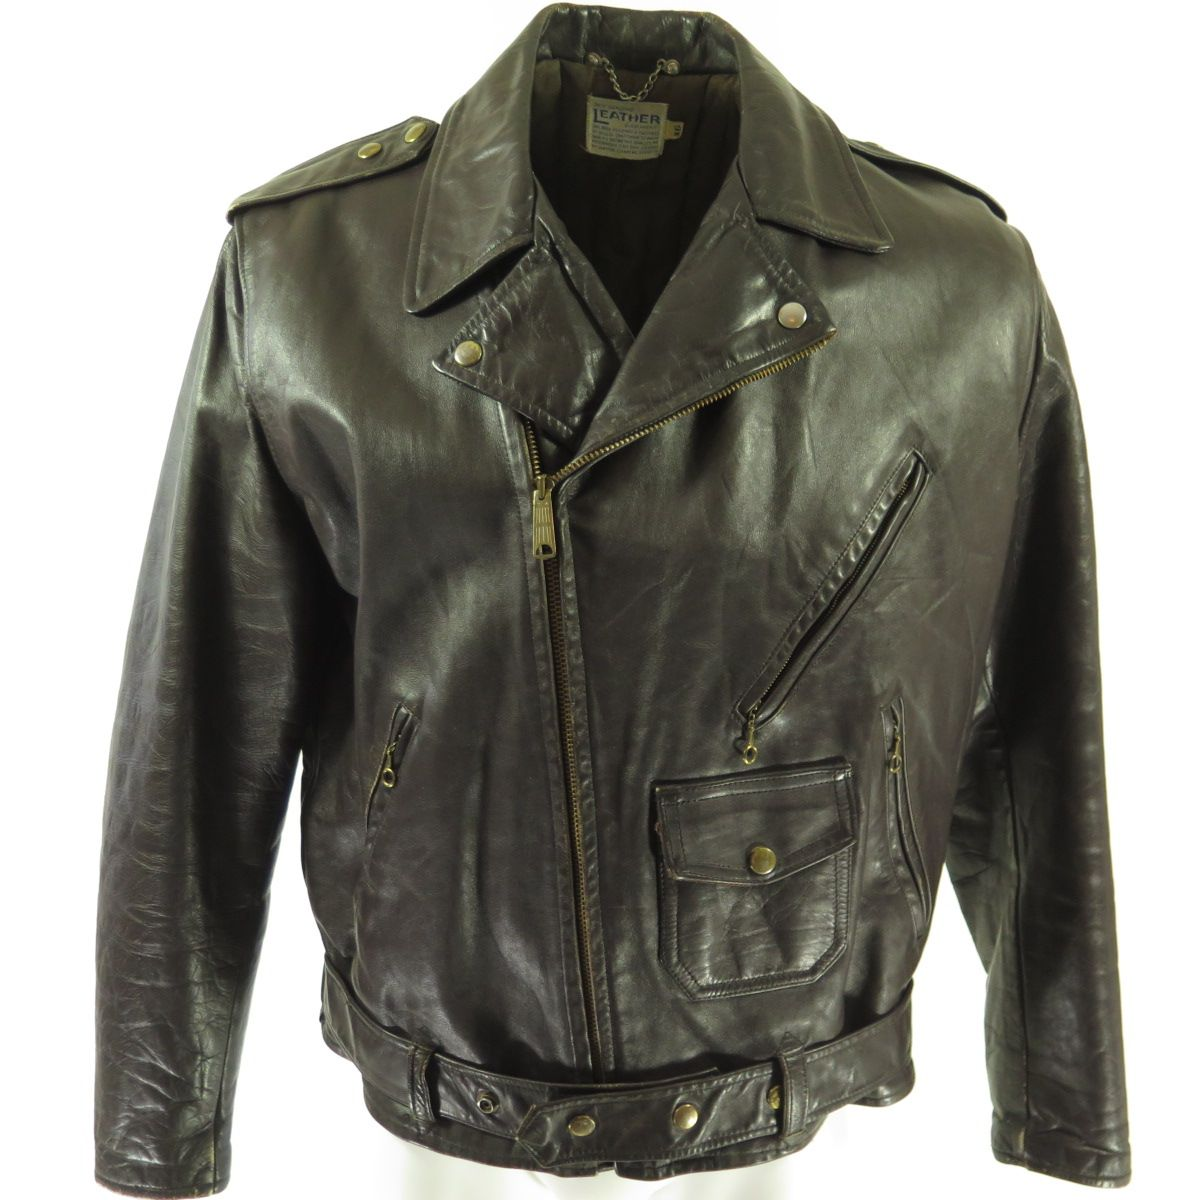 0d794f01af94e8 Details  Made in United States by Leather Garment Leather material 2 Angled  lower zip pockets